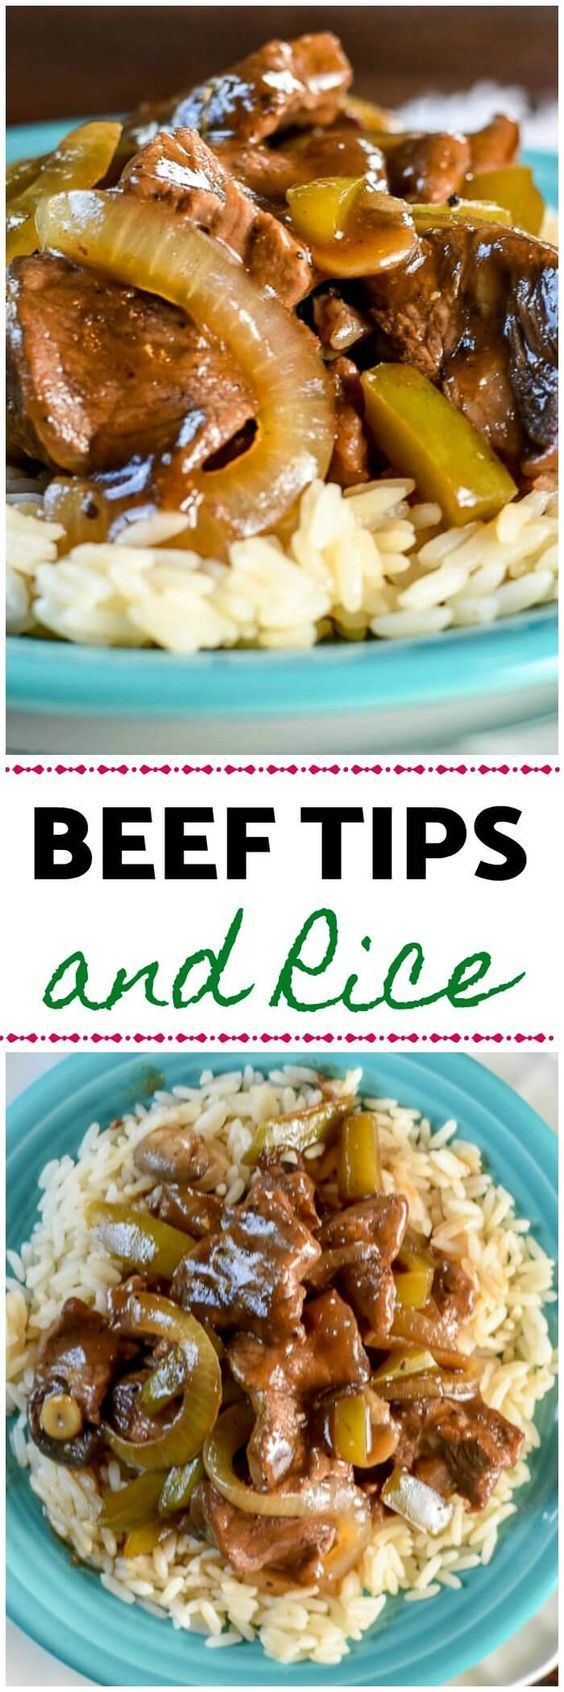 Beef-Tips-And-Rice